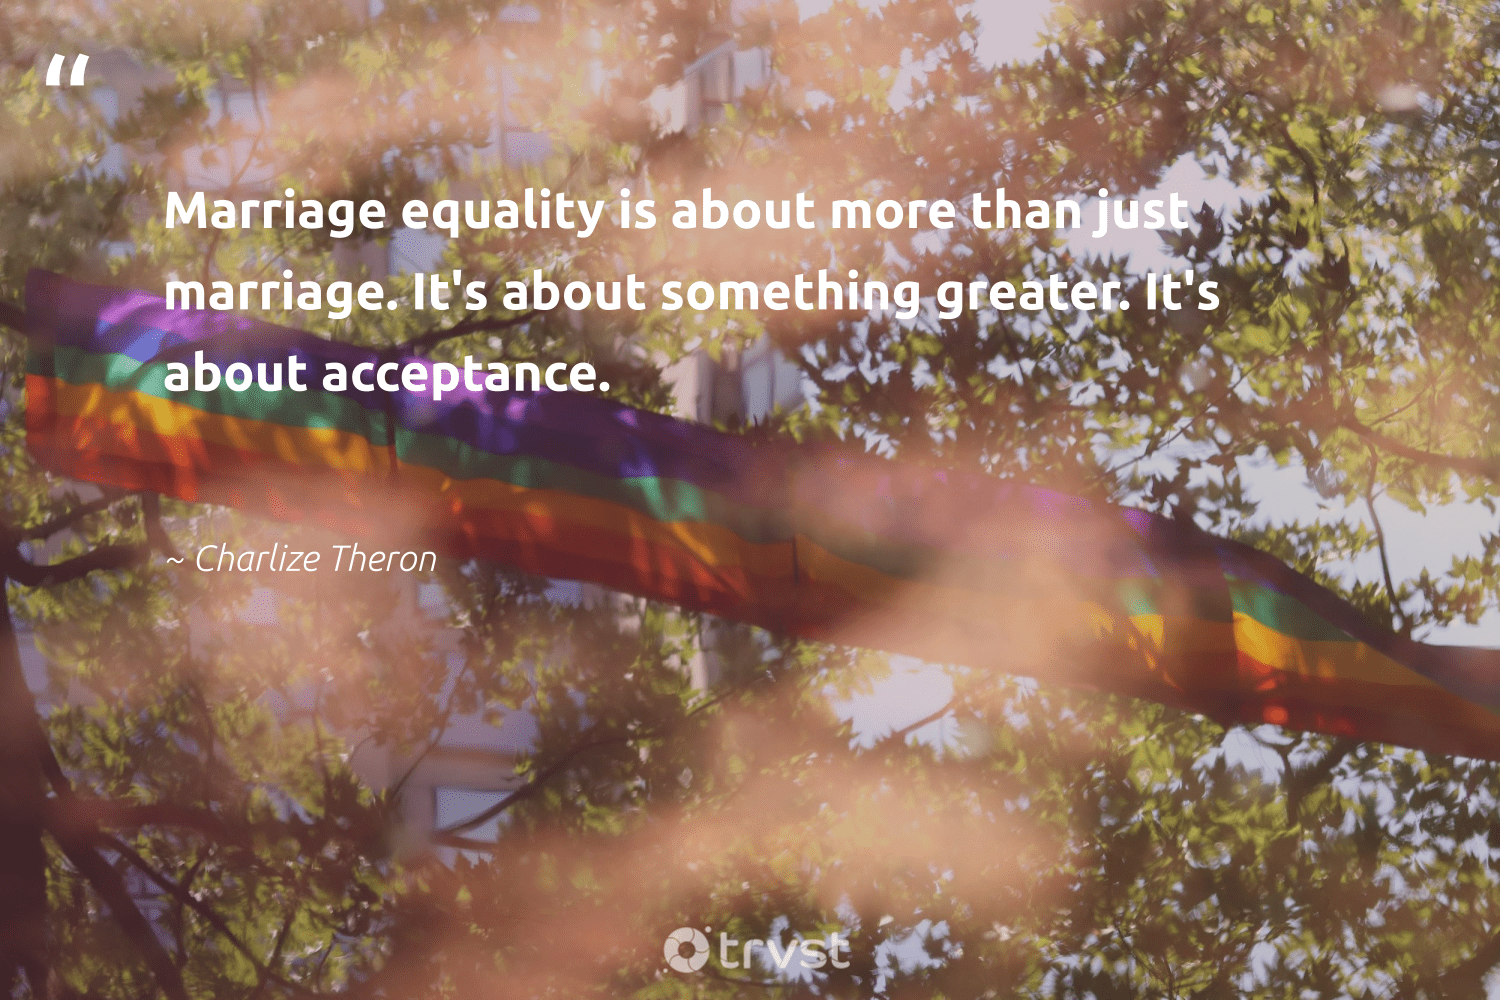 """Marriage equality is about more than just marriage. It's about something greater. It's about acceptance.""  - Charlize Theron #trvst #quotes #equality #empowerment #socialgood #socialchange #dosomething #equalopportunity #bethechange #giveback #ecoconscious #standup"